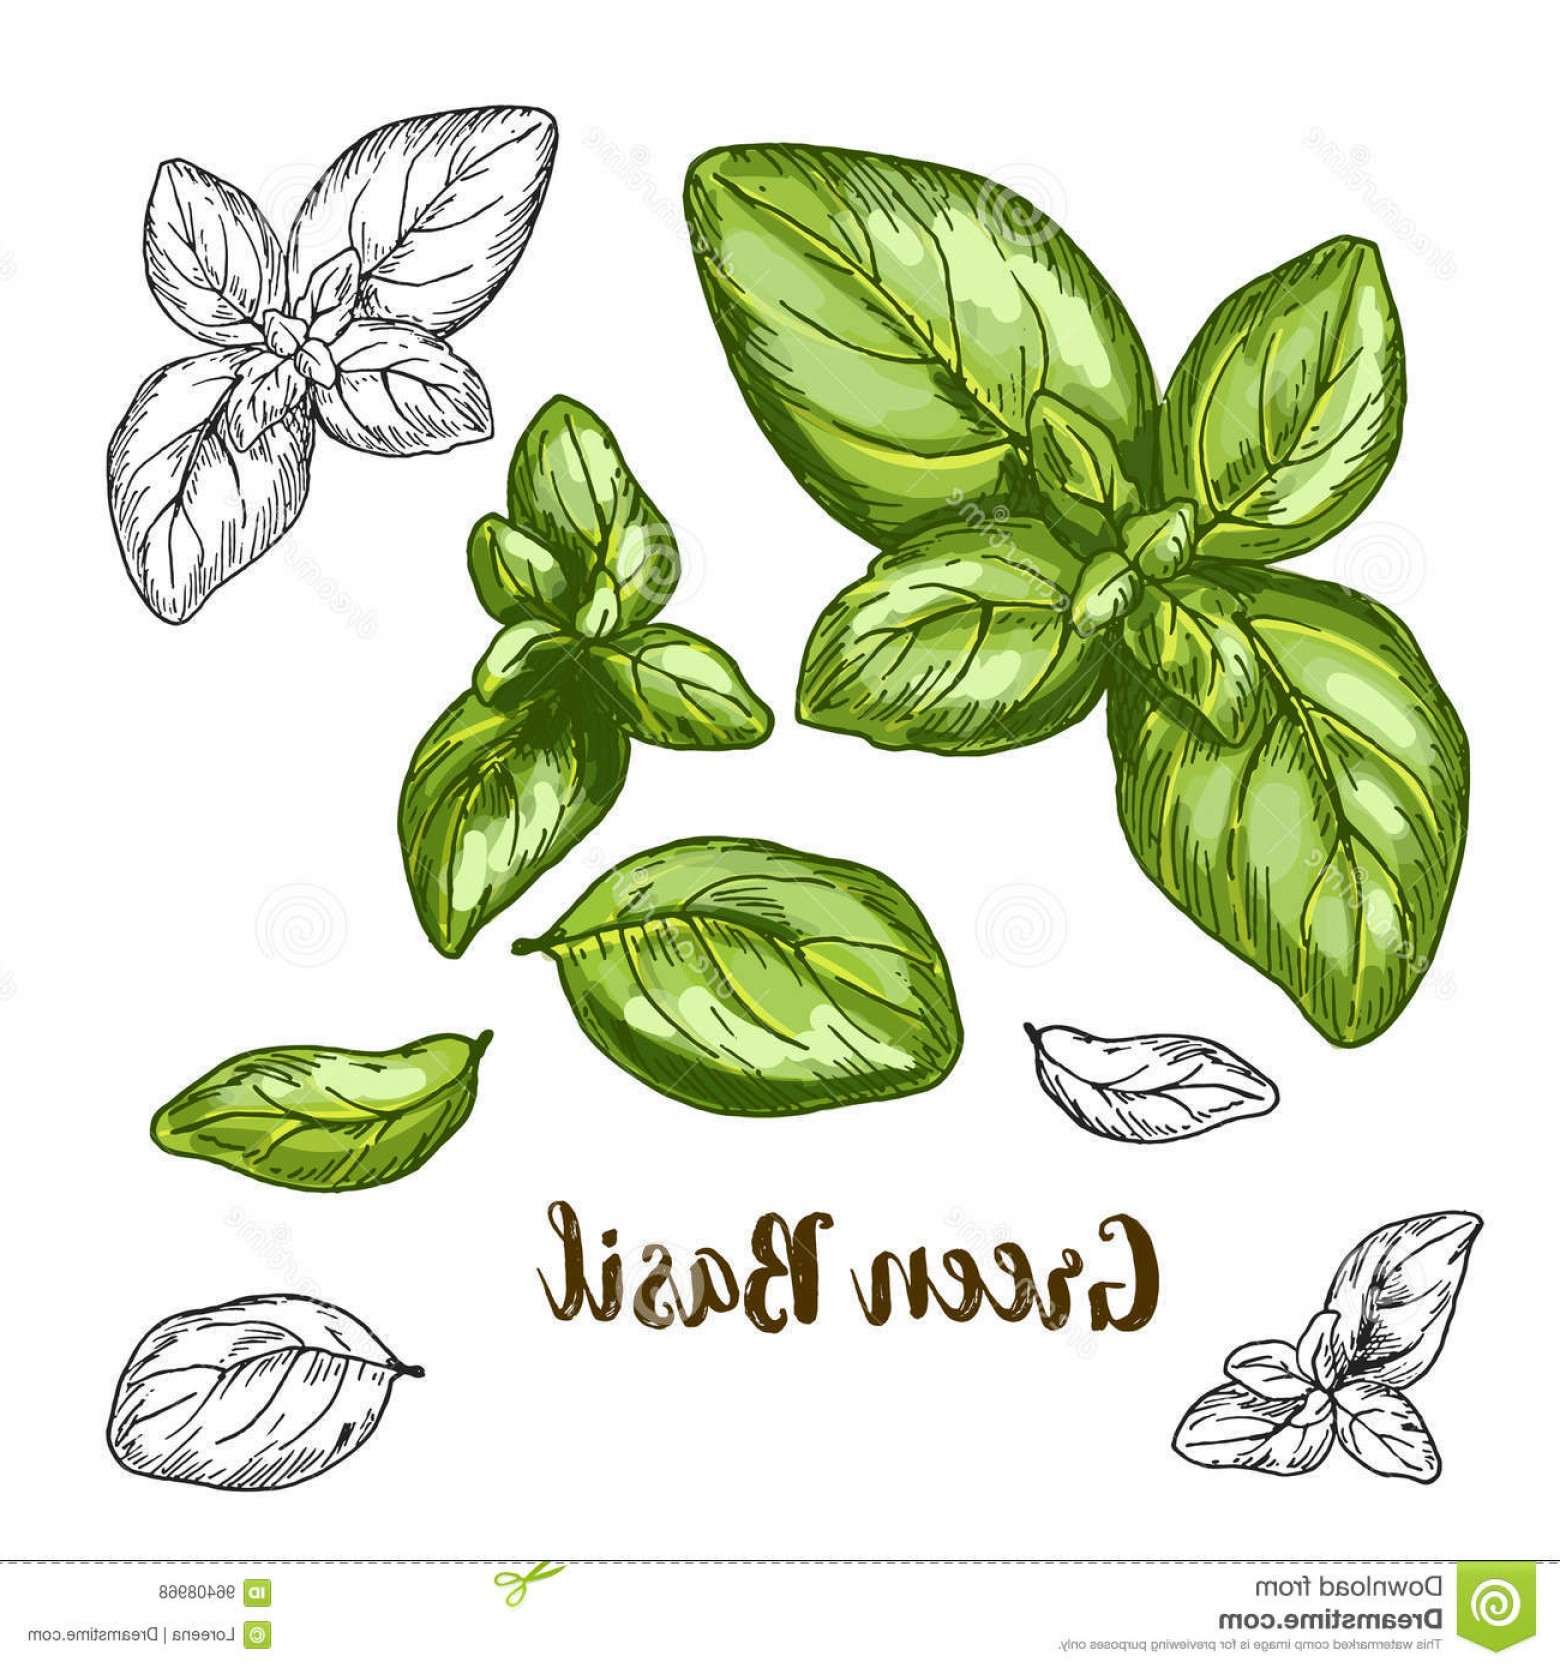 Basil Vector: Stock Illustration Full Color Realistic Sketch Illustration Green Basil Vector Image